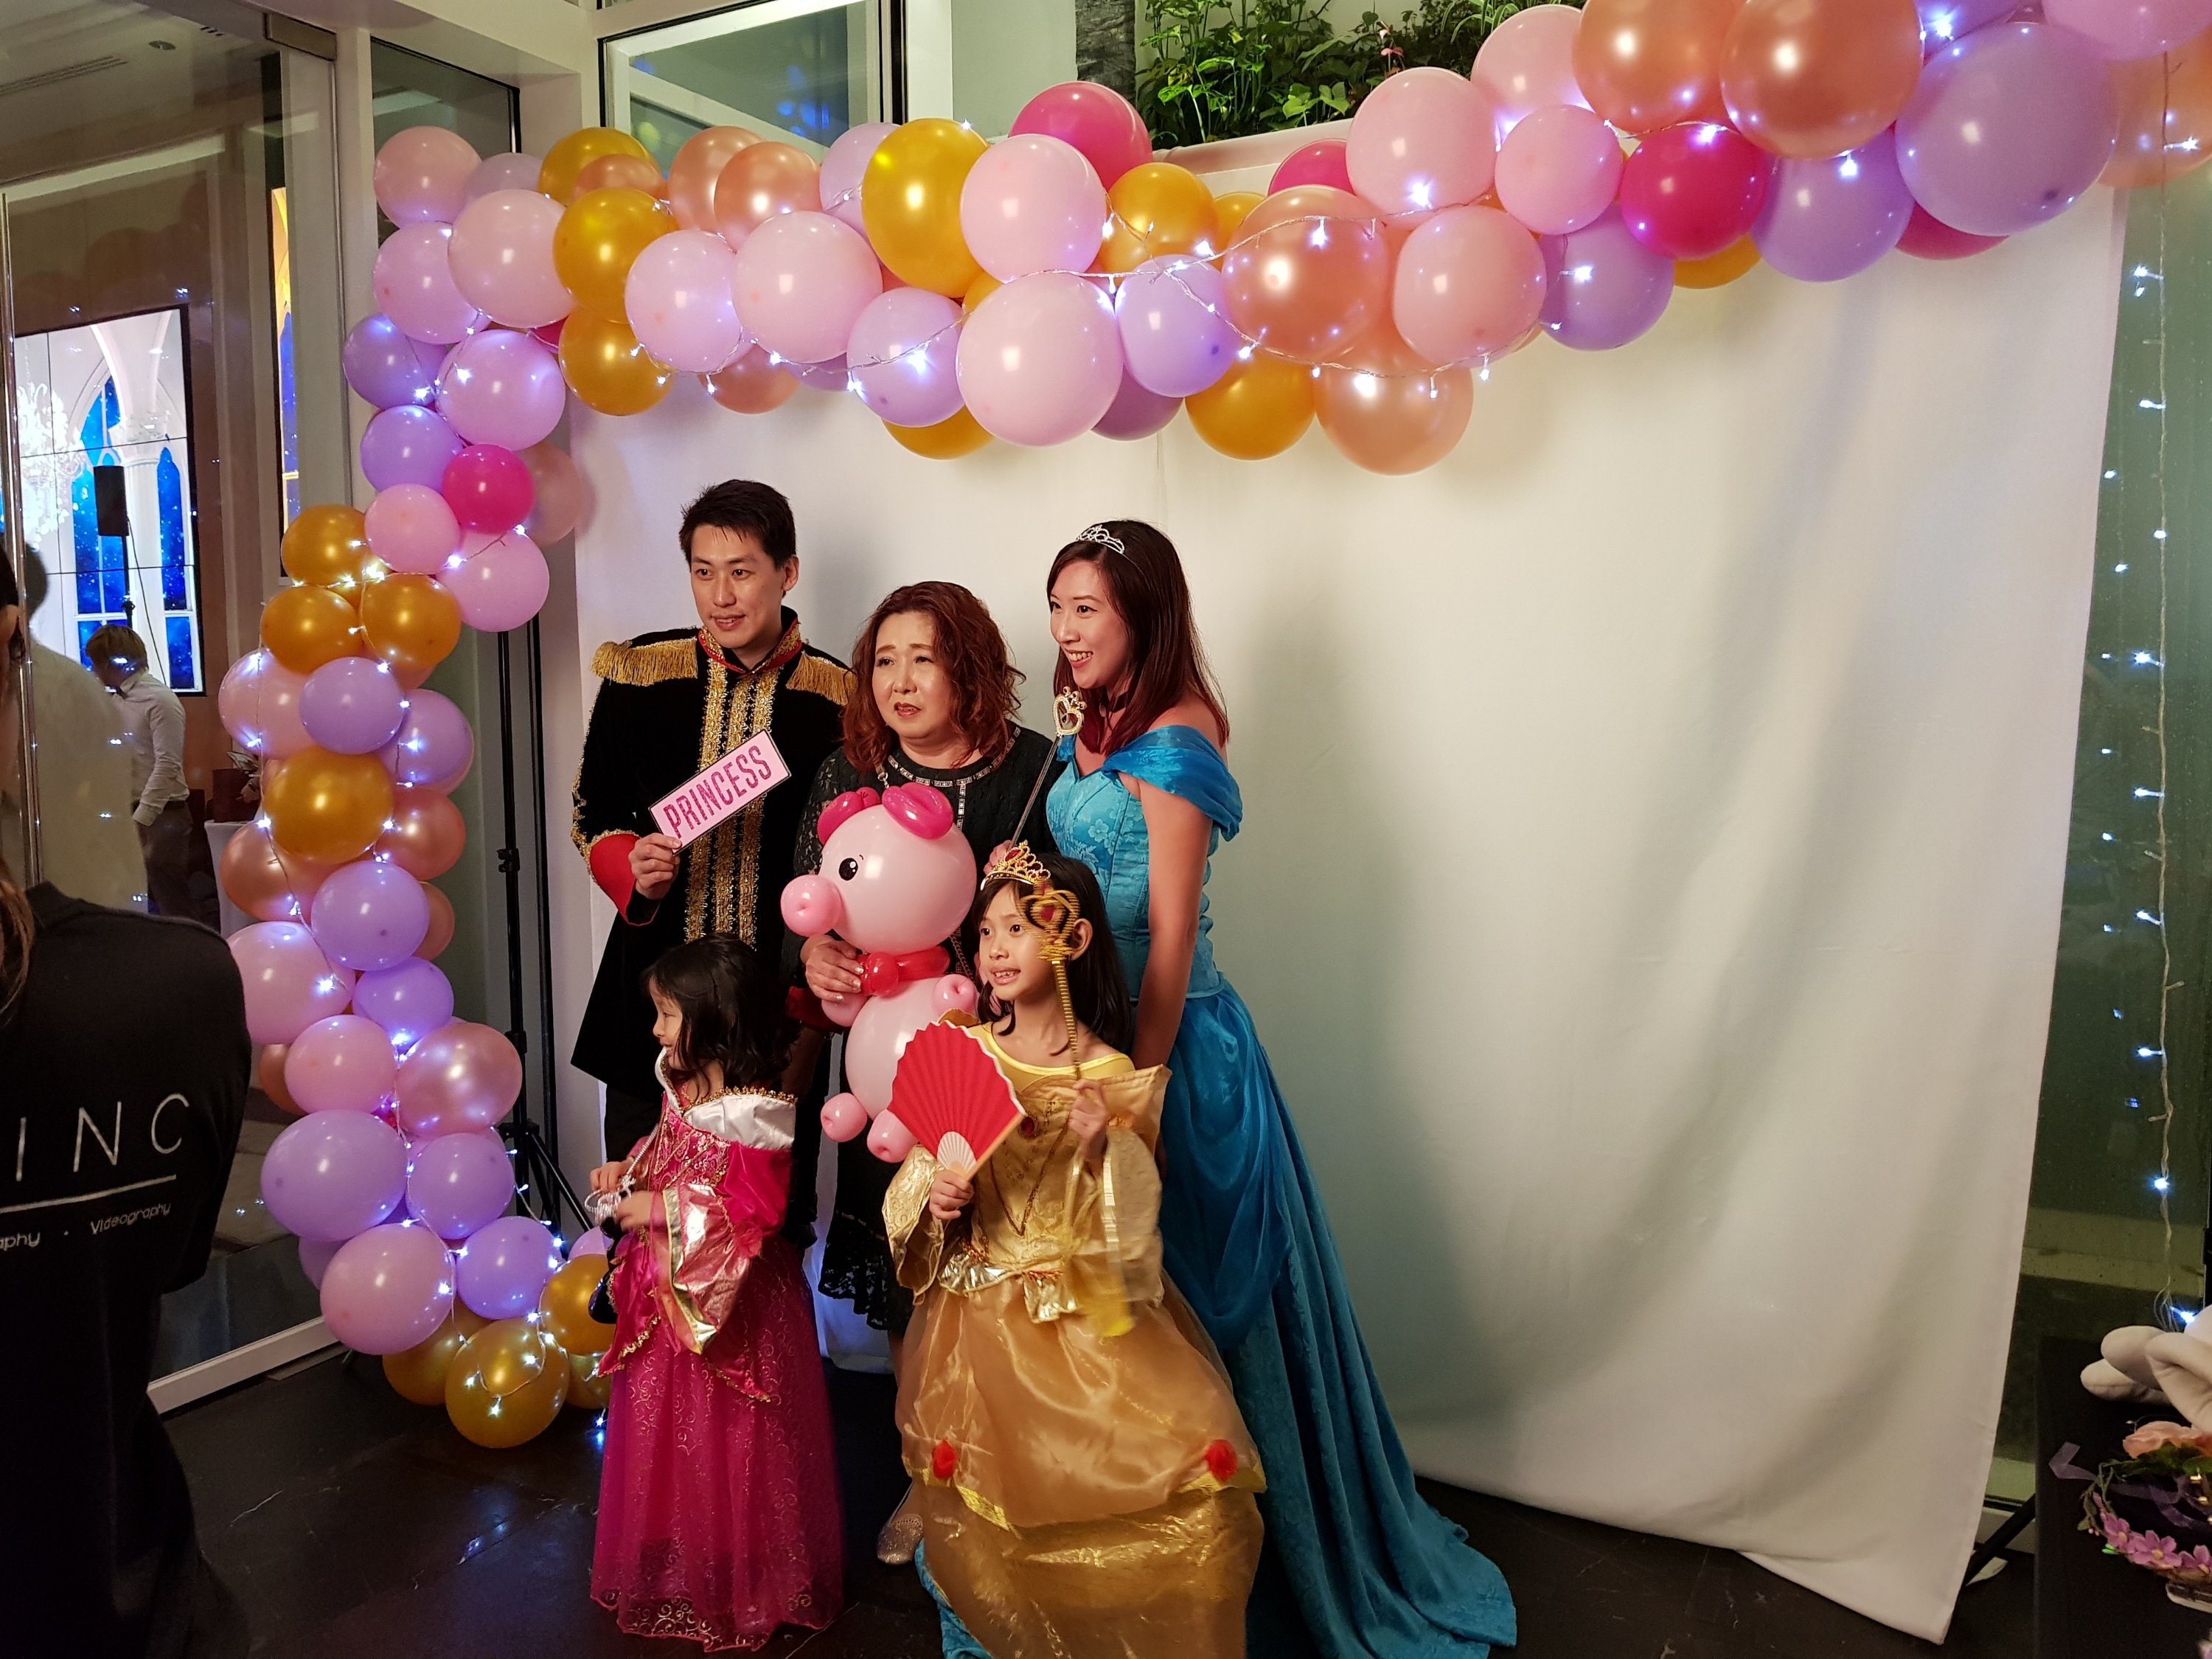 , Alice in the Wonderland balloon decorations for a grand birthday party!, Singapore Balloon Decoration Services - Balloon Workshop and Balloon Sculpting